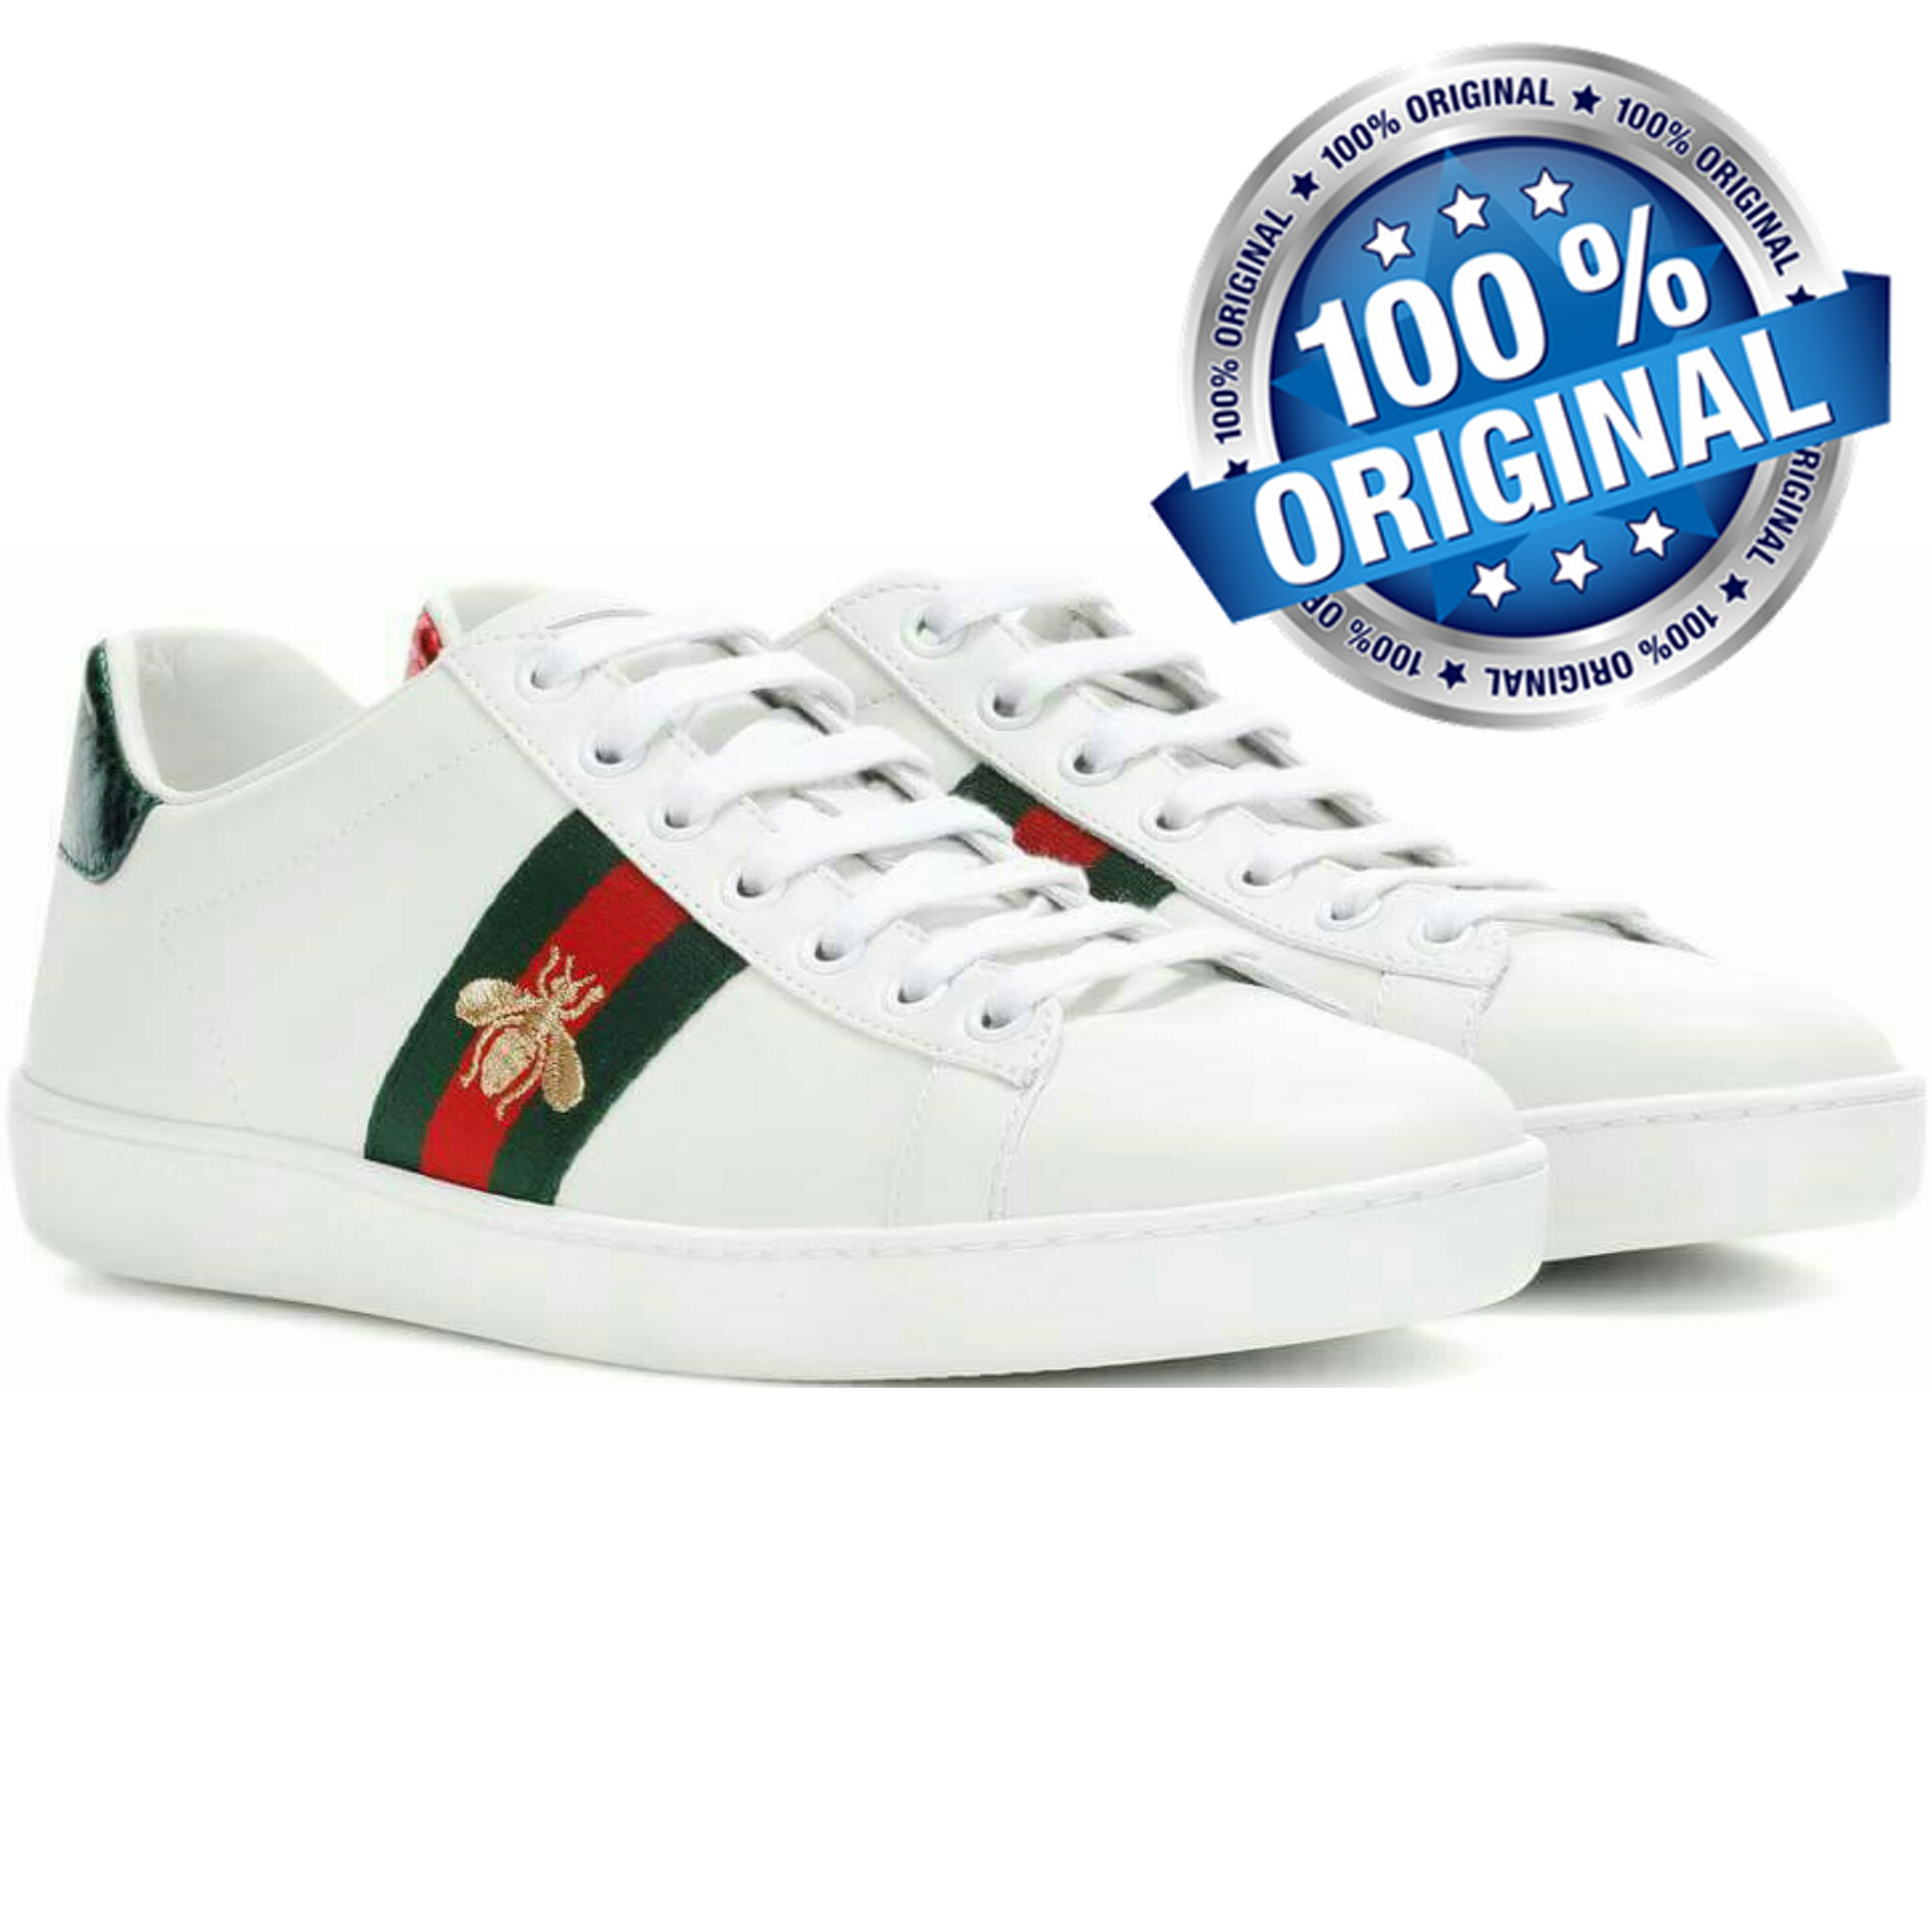 af7ab3fed874 100% Original Gucci Ace bee Sneaker For Men Prices In Pakistan ...